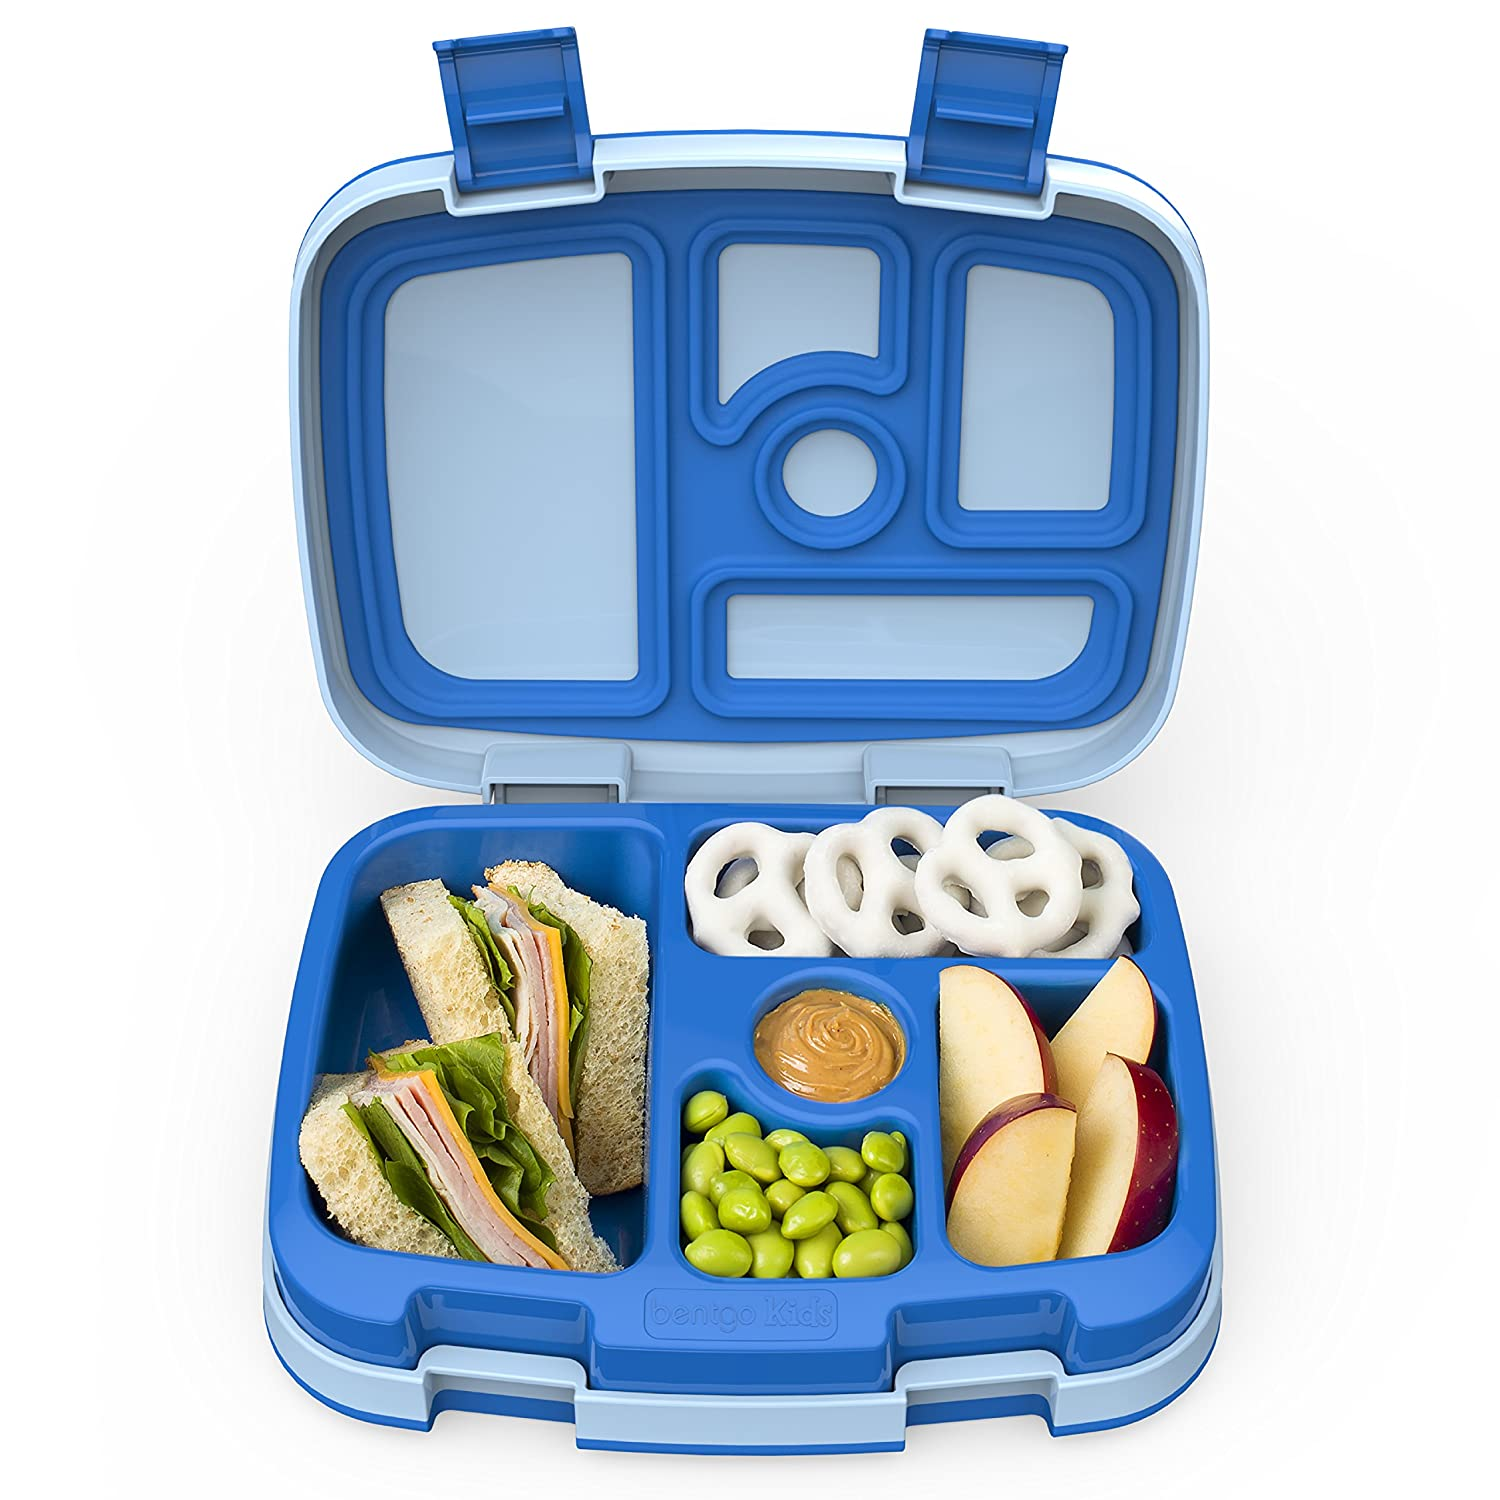 4138ca7a3157 Bentgo Kids Childrens Lunch Box - Bento-Styled Lunch Solution Offers  Durable, Leak-Proof, On-the-Go Meal and Snack Packing